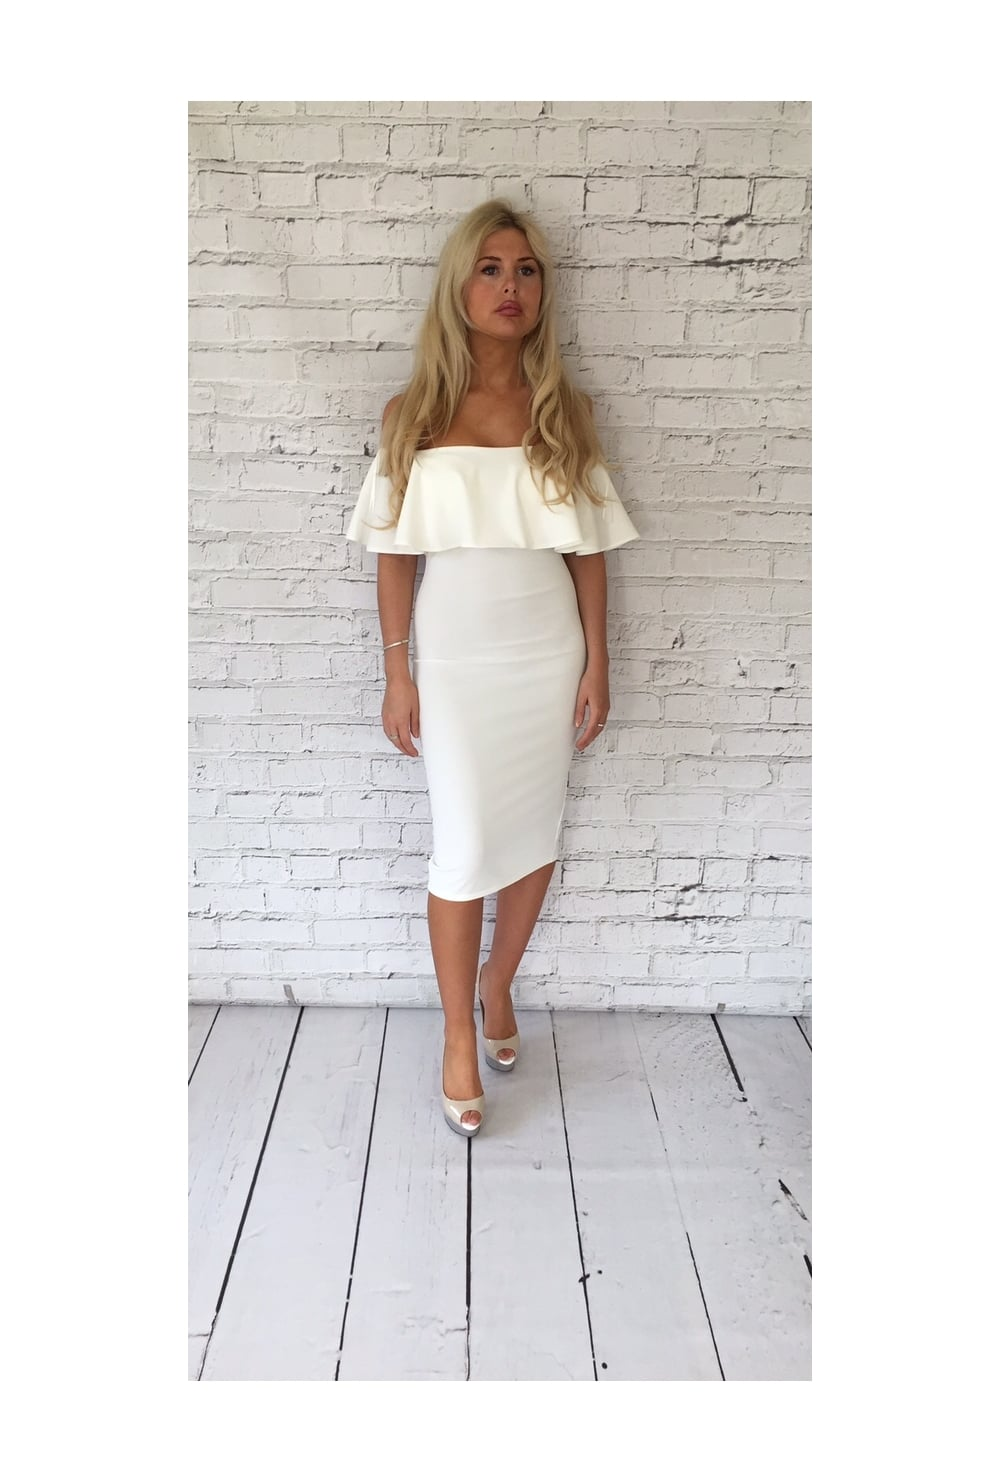 Off the Shoulder Dresses UK